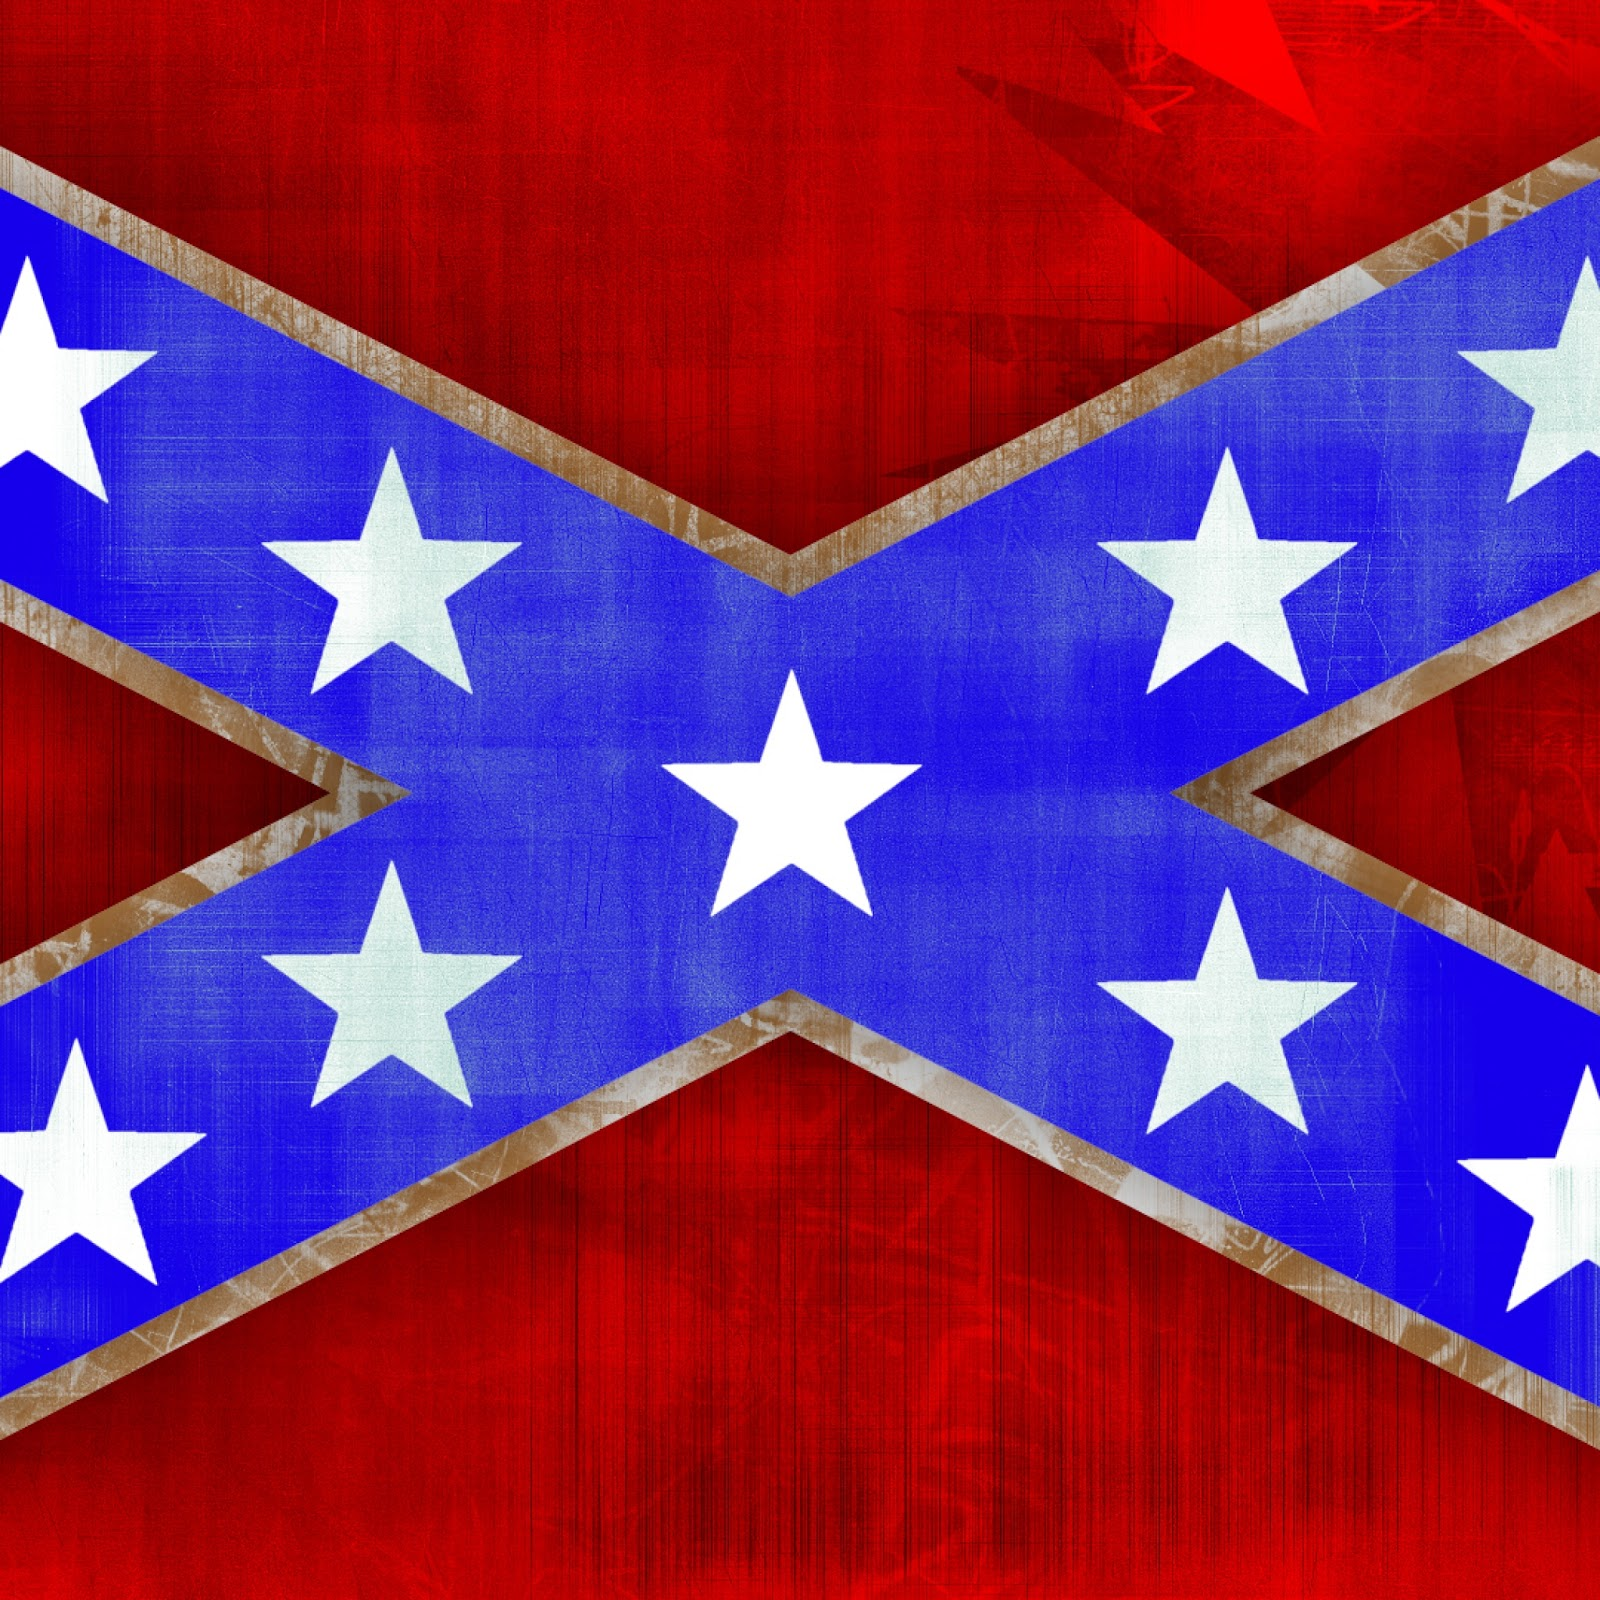 Wallpaper confederate flag